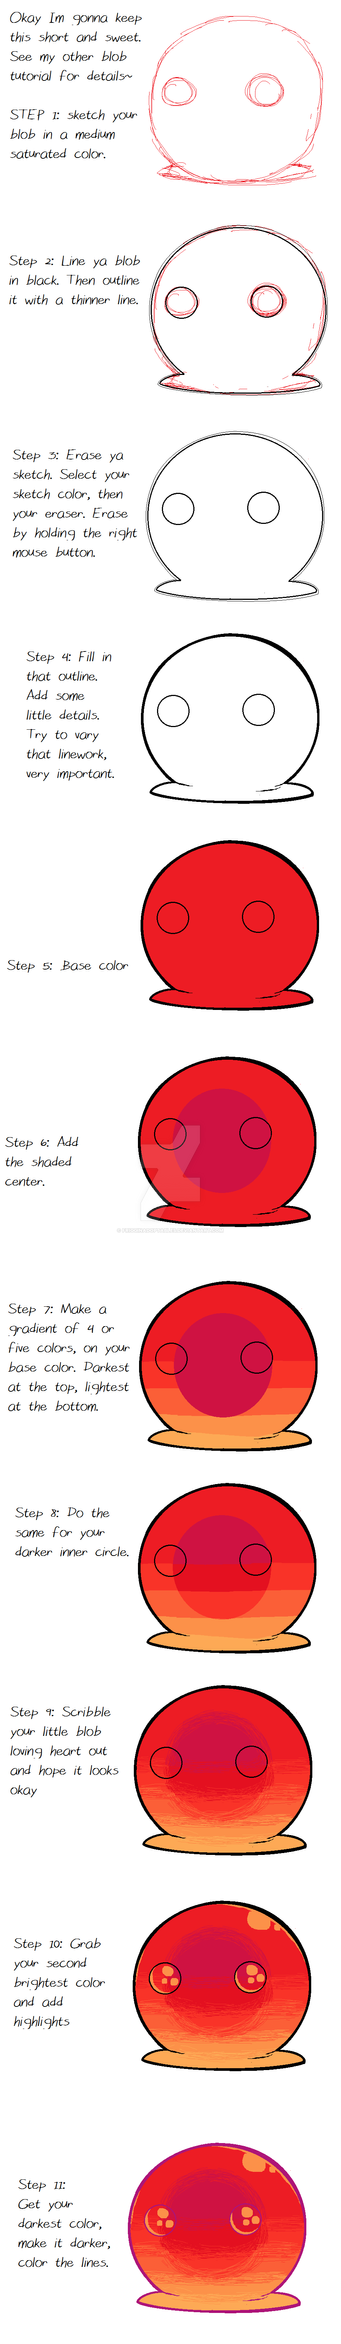 MS Paint Blob Tutorial by FrigginAdoptables